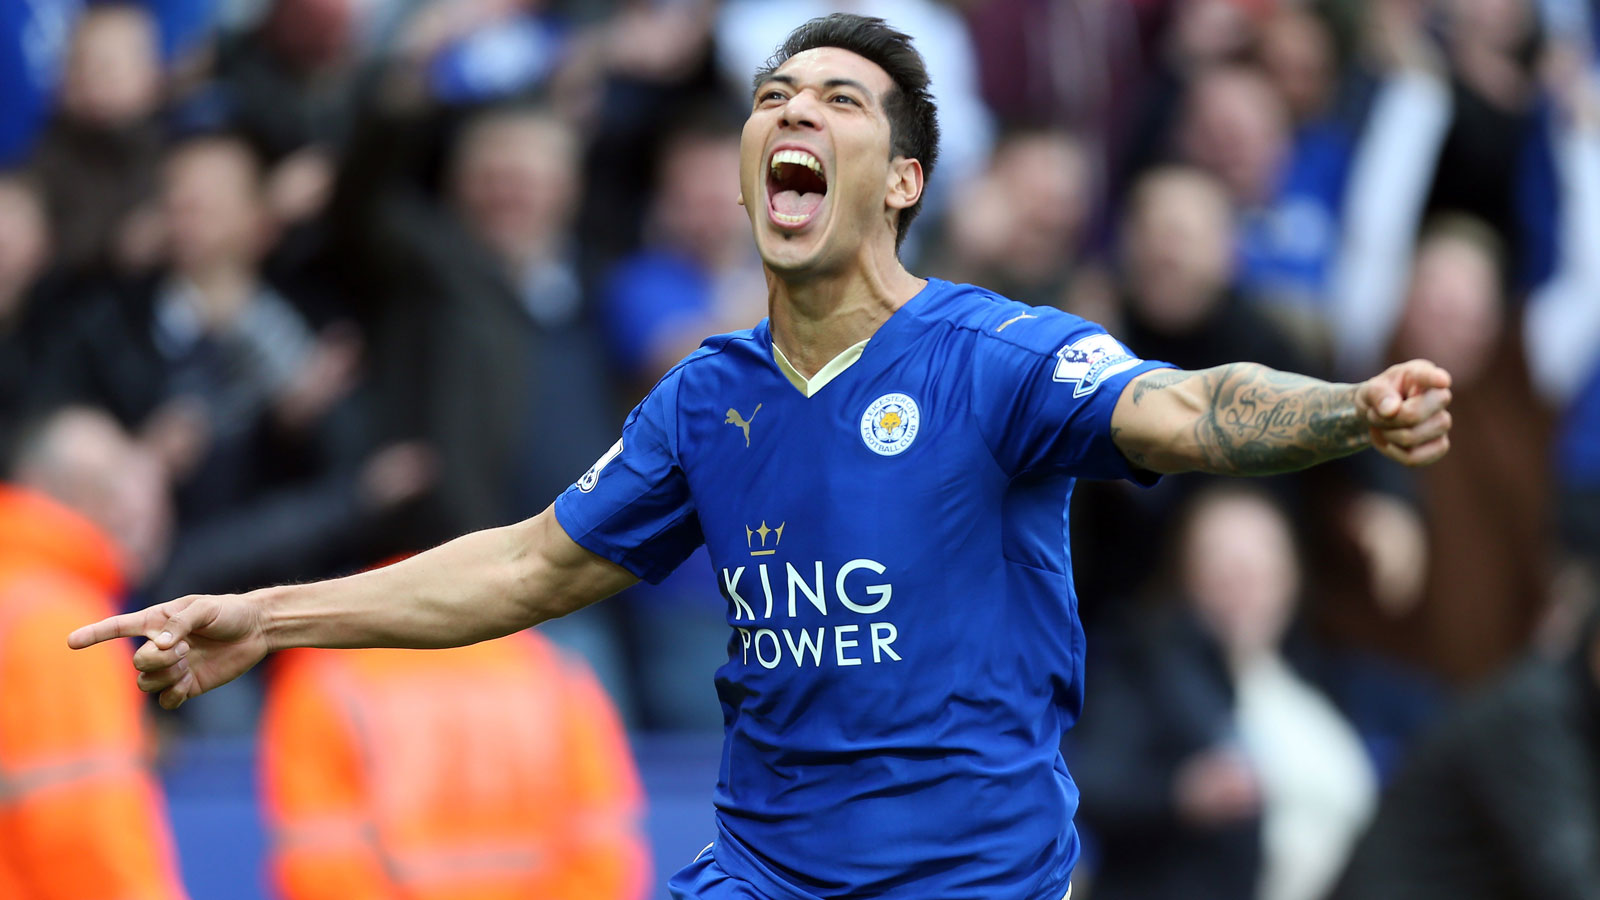 With leading scorer Jamie Vardy suspended because of a referee altercation in the previous match vs. West Ham, Leonardo Ulloa stepped into the starting lineup and scored twice in a 4-0 rout of Swansea City. A Tottenham draw the following day put Leicester in position to clinch the title with three points from its final three games.